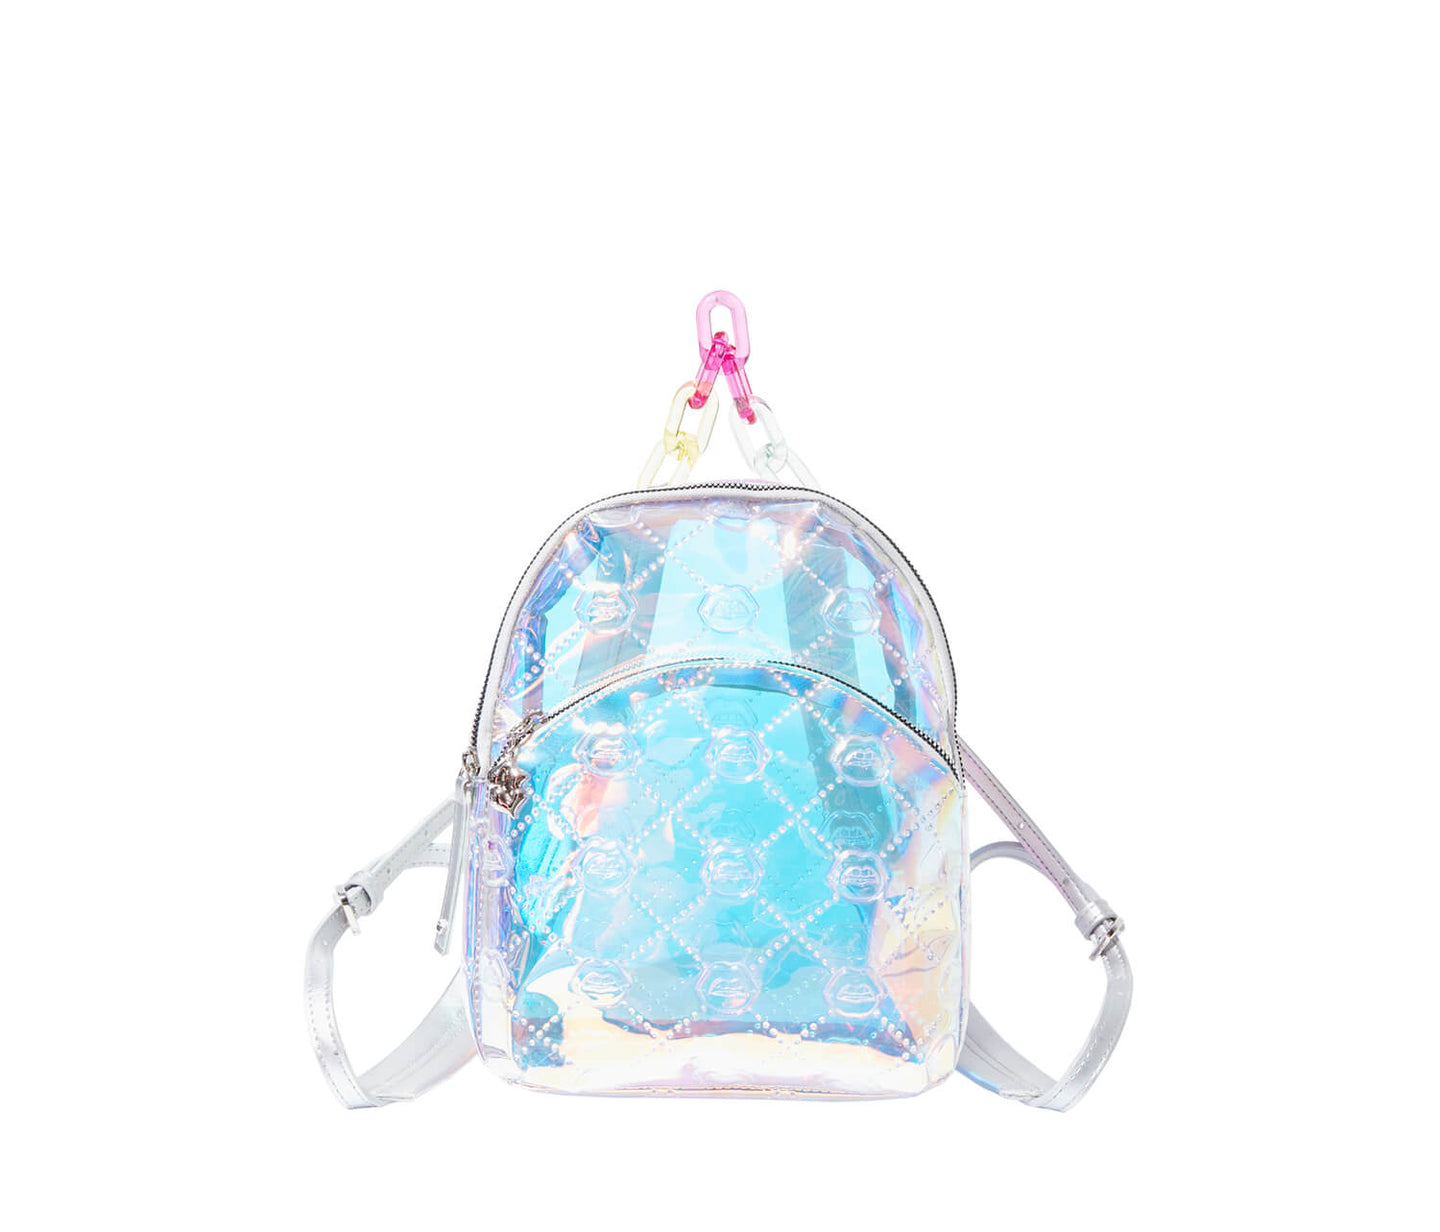 THE FUTURE IS HERE MINI BACKPACK CLEAR - HANDBAGS - Betsey Johnson